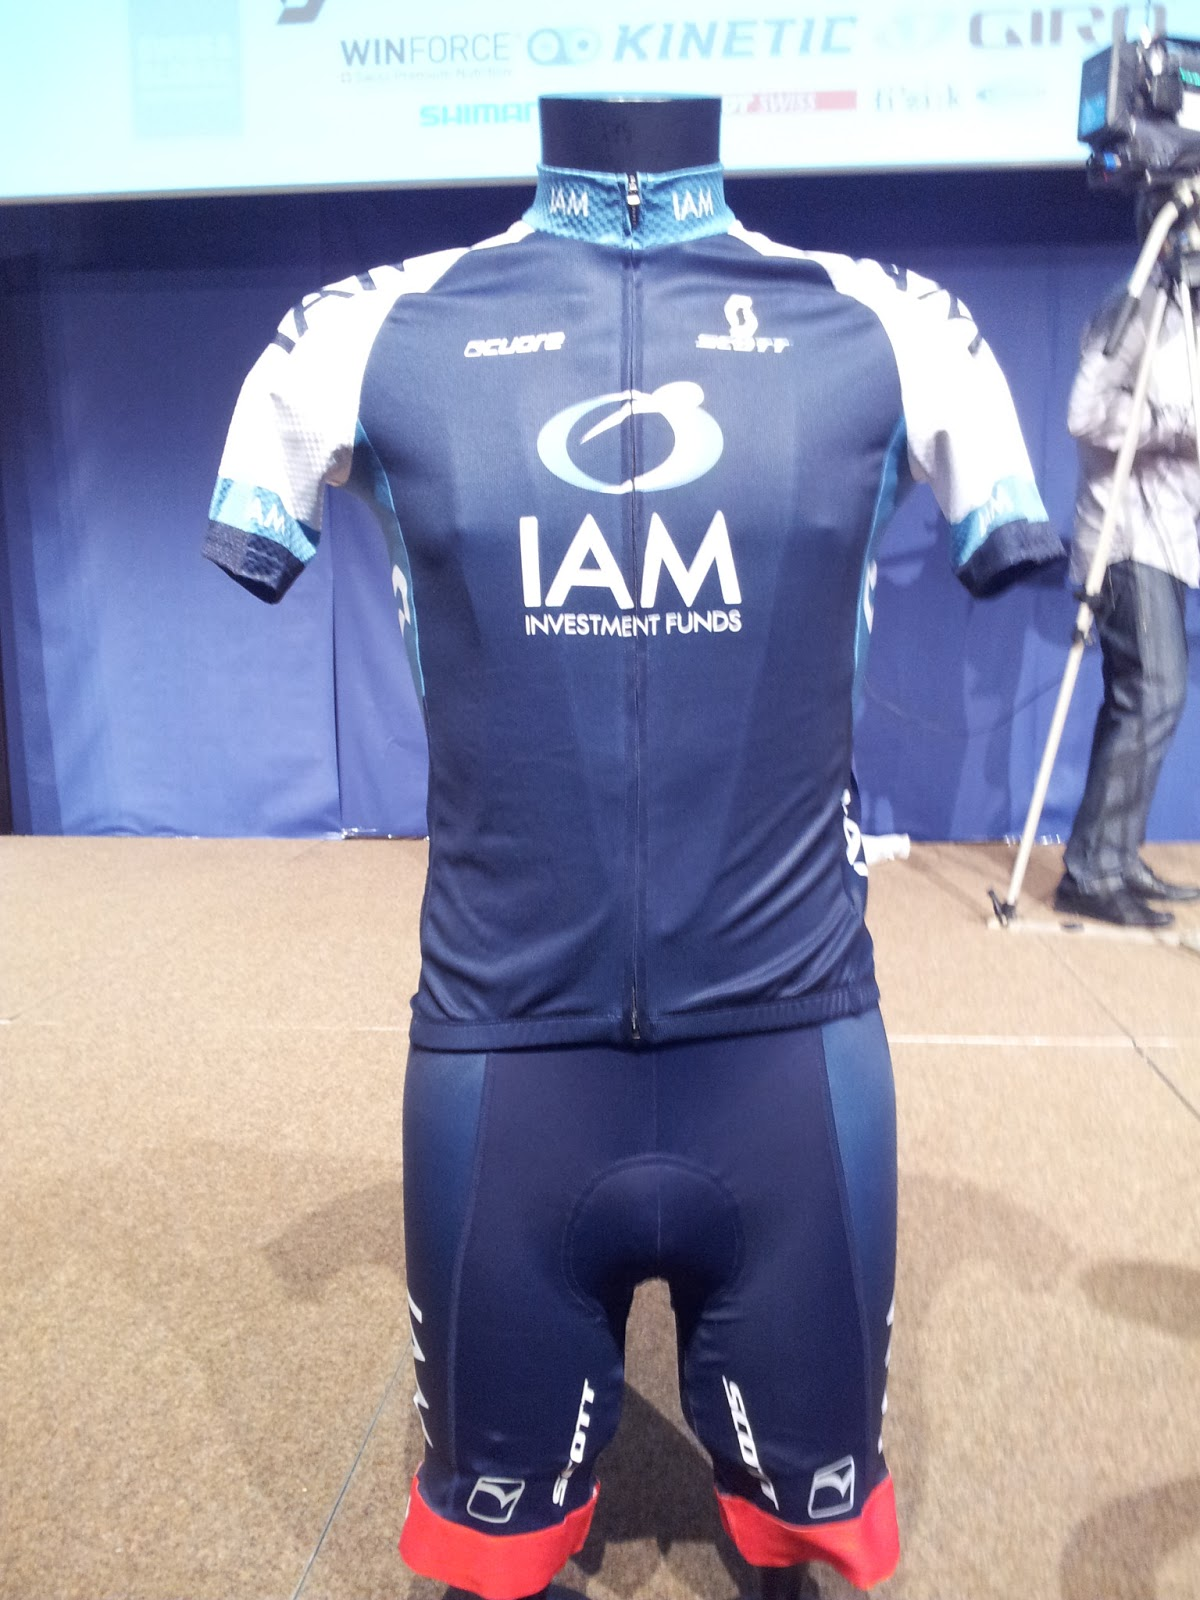 The Team IAM Cycling kit. I really like the colors! (photo by Guillaume Boillot)